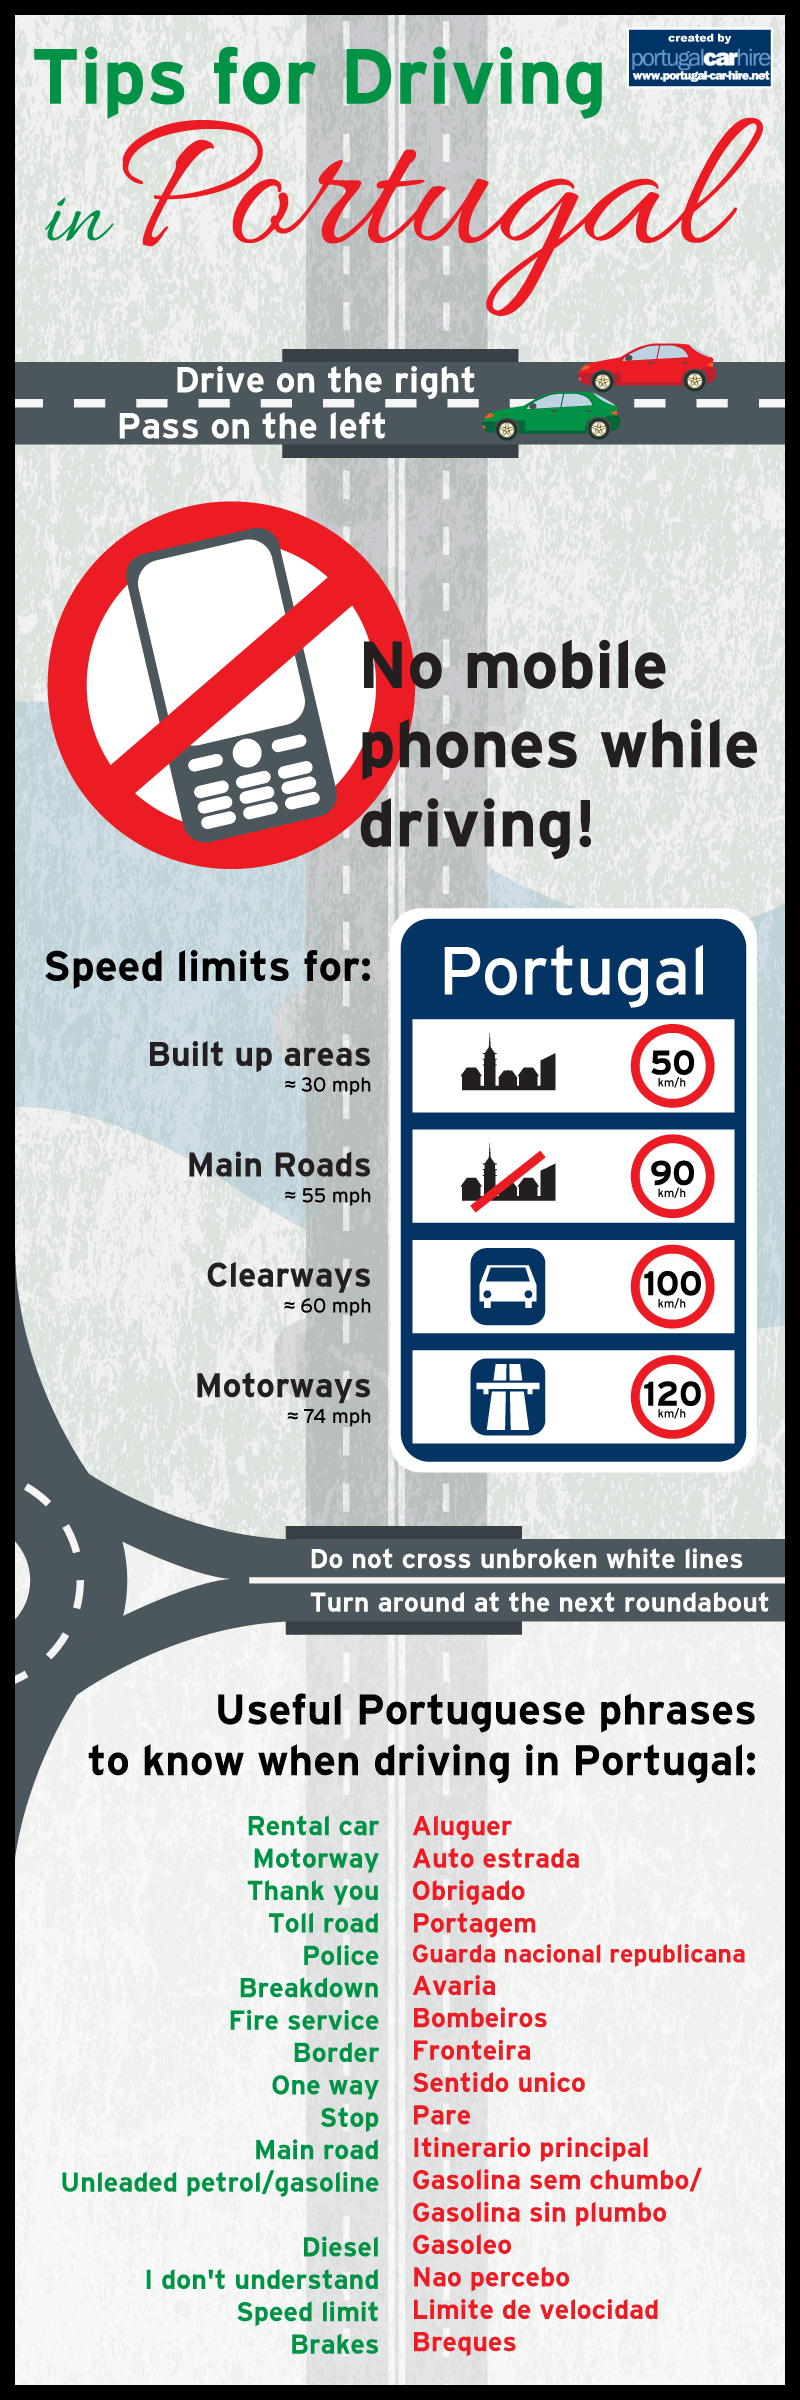 How to driving in Portugal